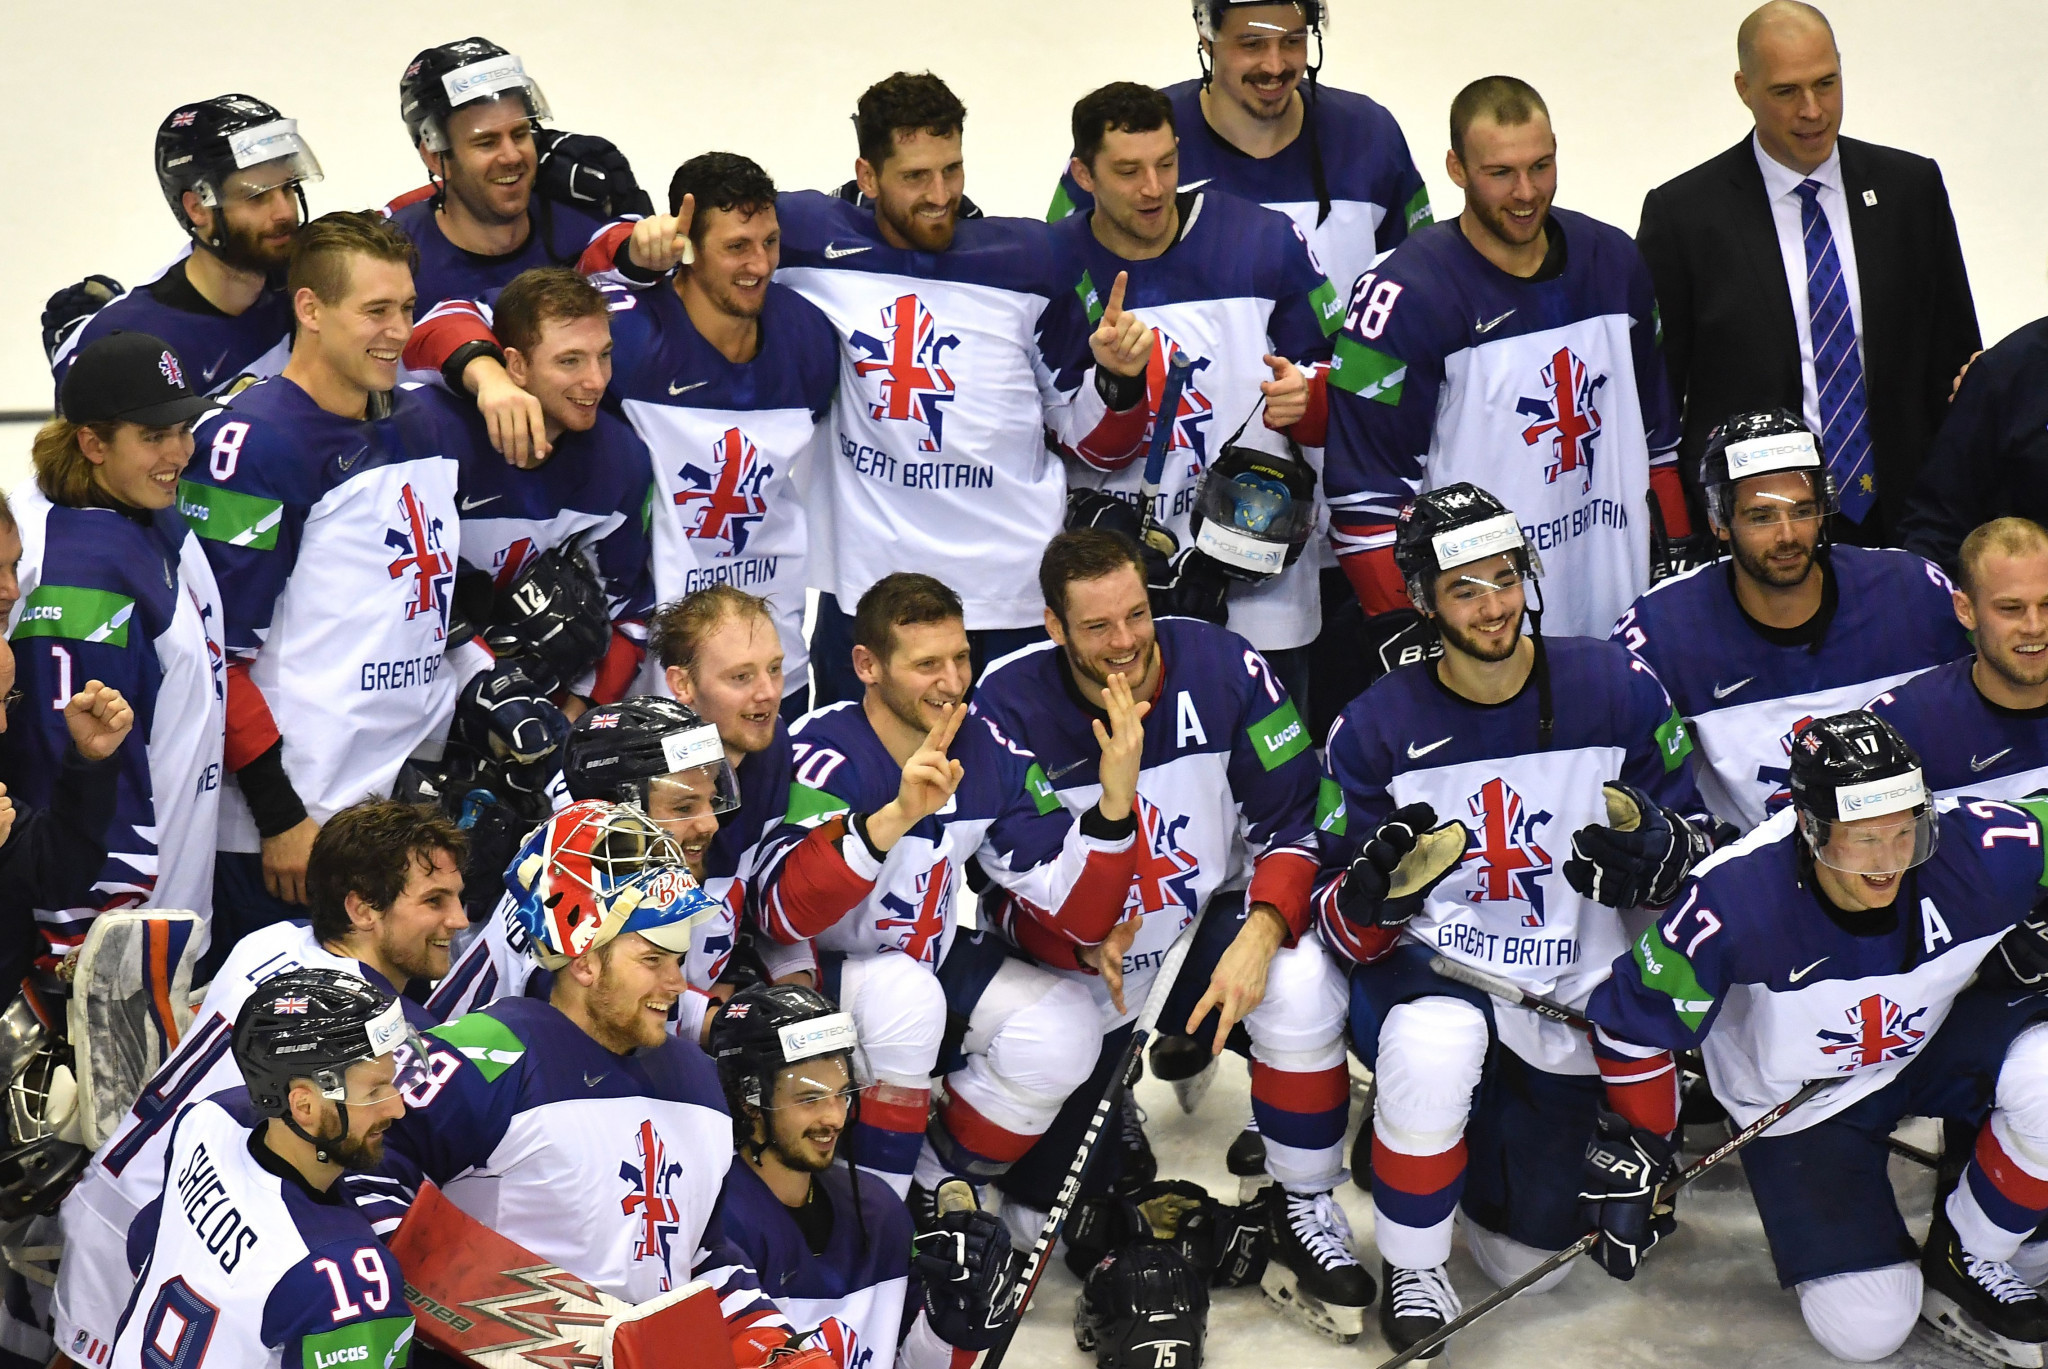 Martin Grubb has been tasked with bringing through the next crop of British ice hockey stars in his new role as head coach of the under-20 national team ©Getty Images